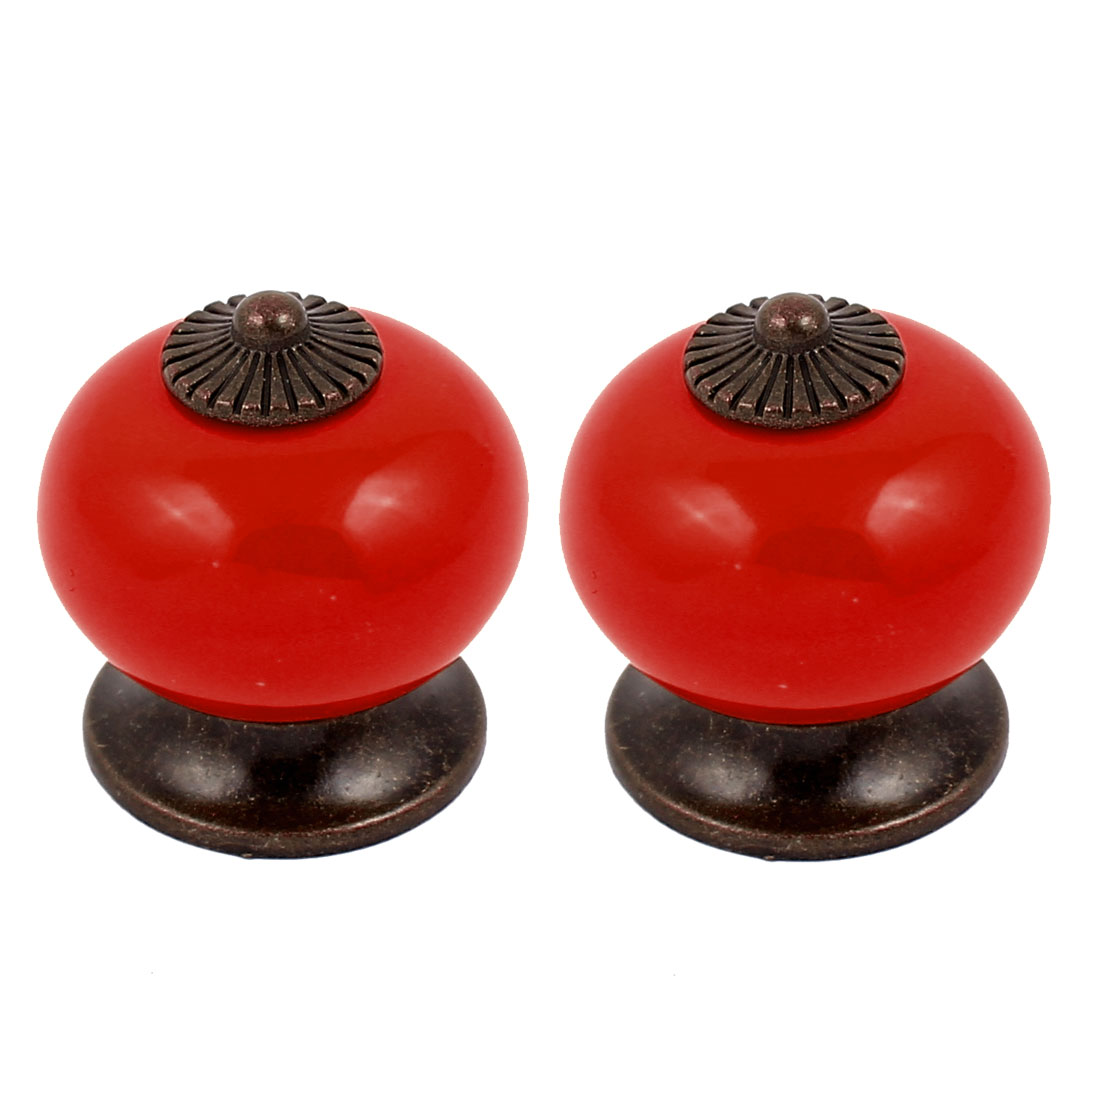 Cabinet Wardrobe Drawer Door Pull Round Ceramic Knobs Handle Red 2pcs